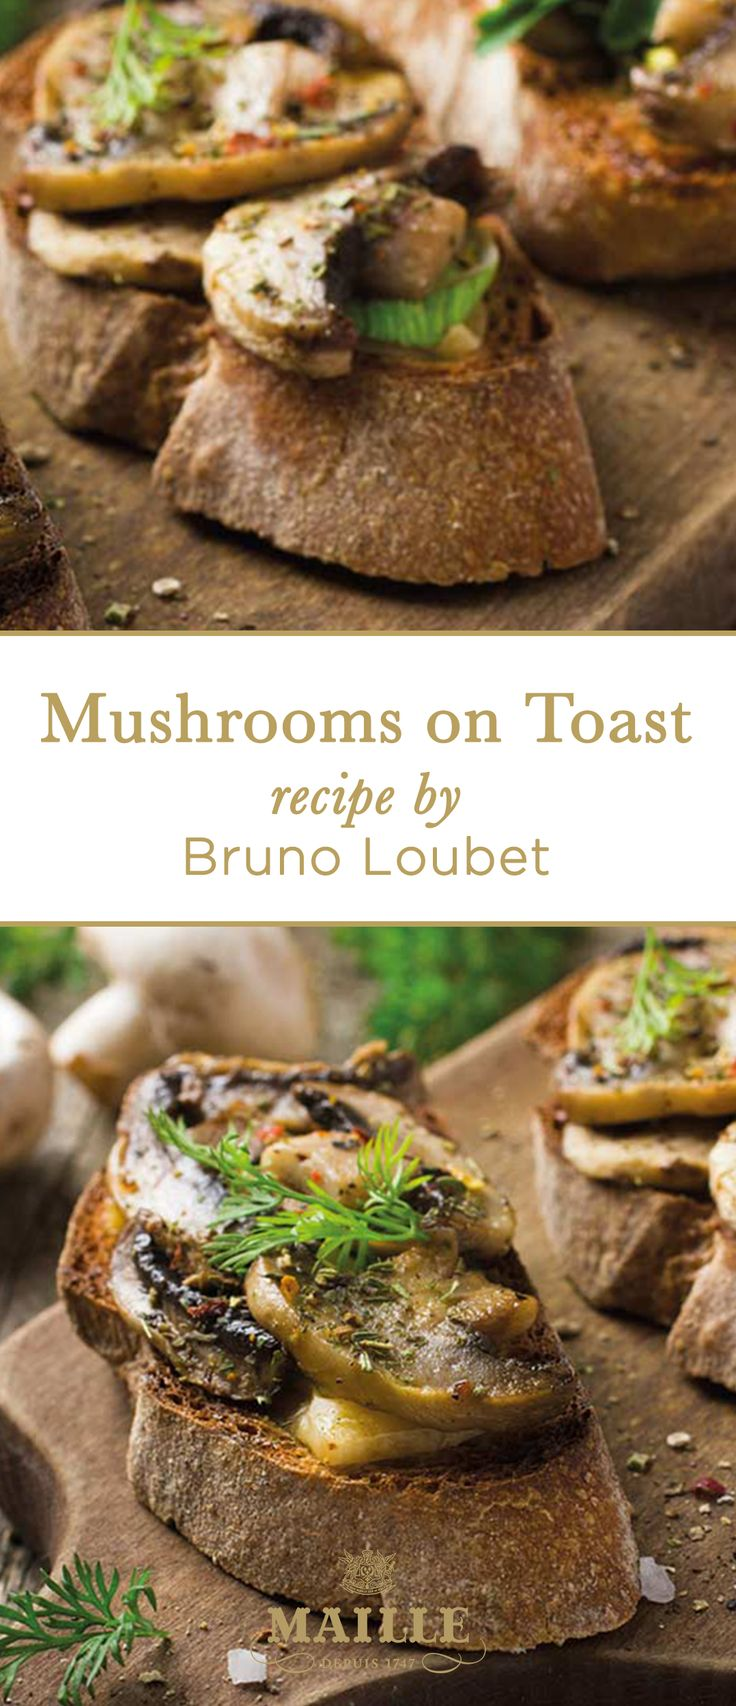 Mushrooms on Toasts. This recipe features  Maille Hazelnut, Black Chanterelle and White Wine Mustard, Maille Balsamic Vinegar Glaze, and Maille Hazelnut Oil.